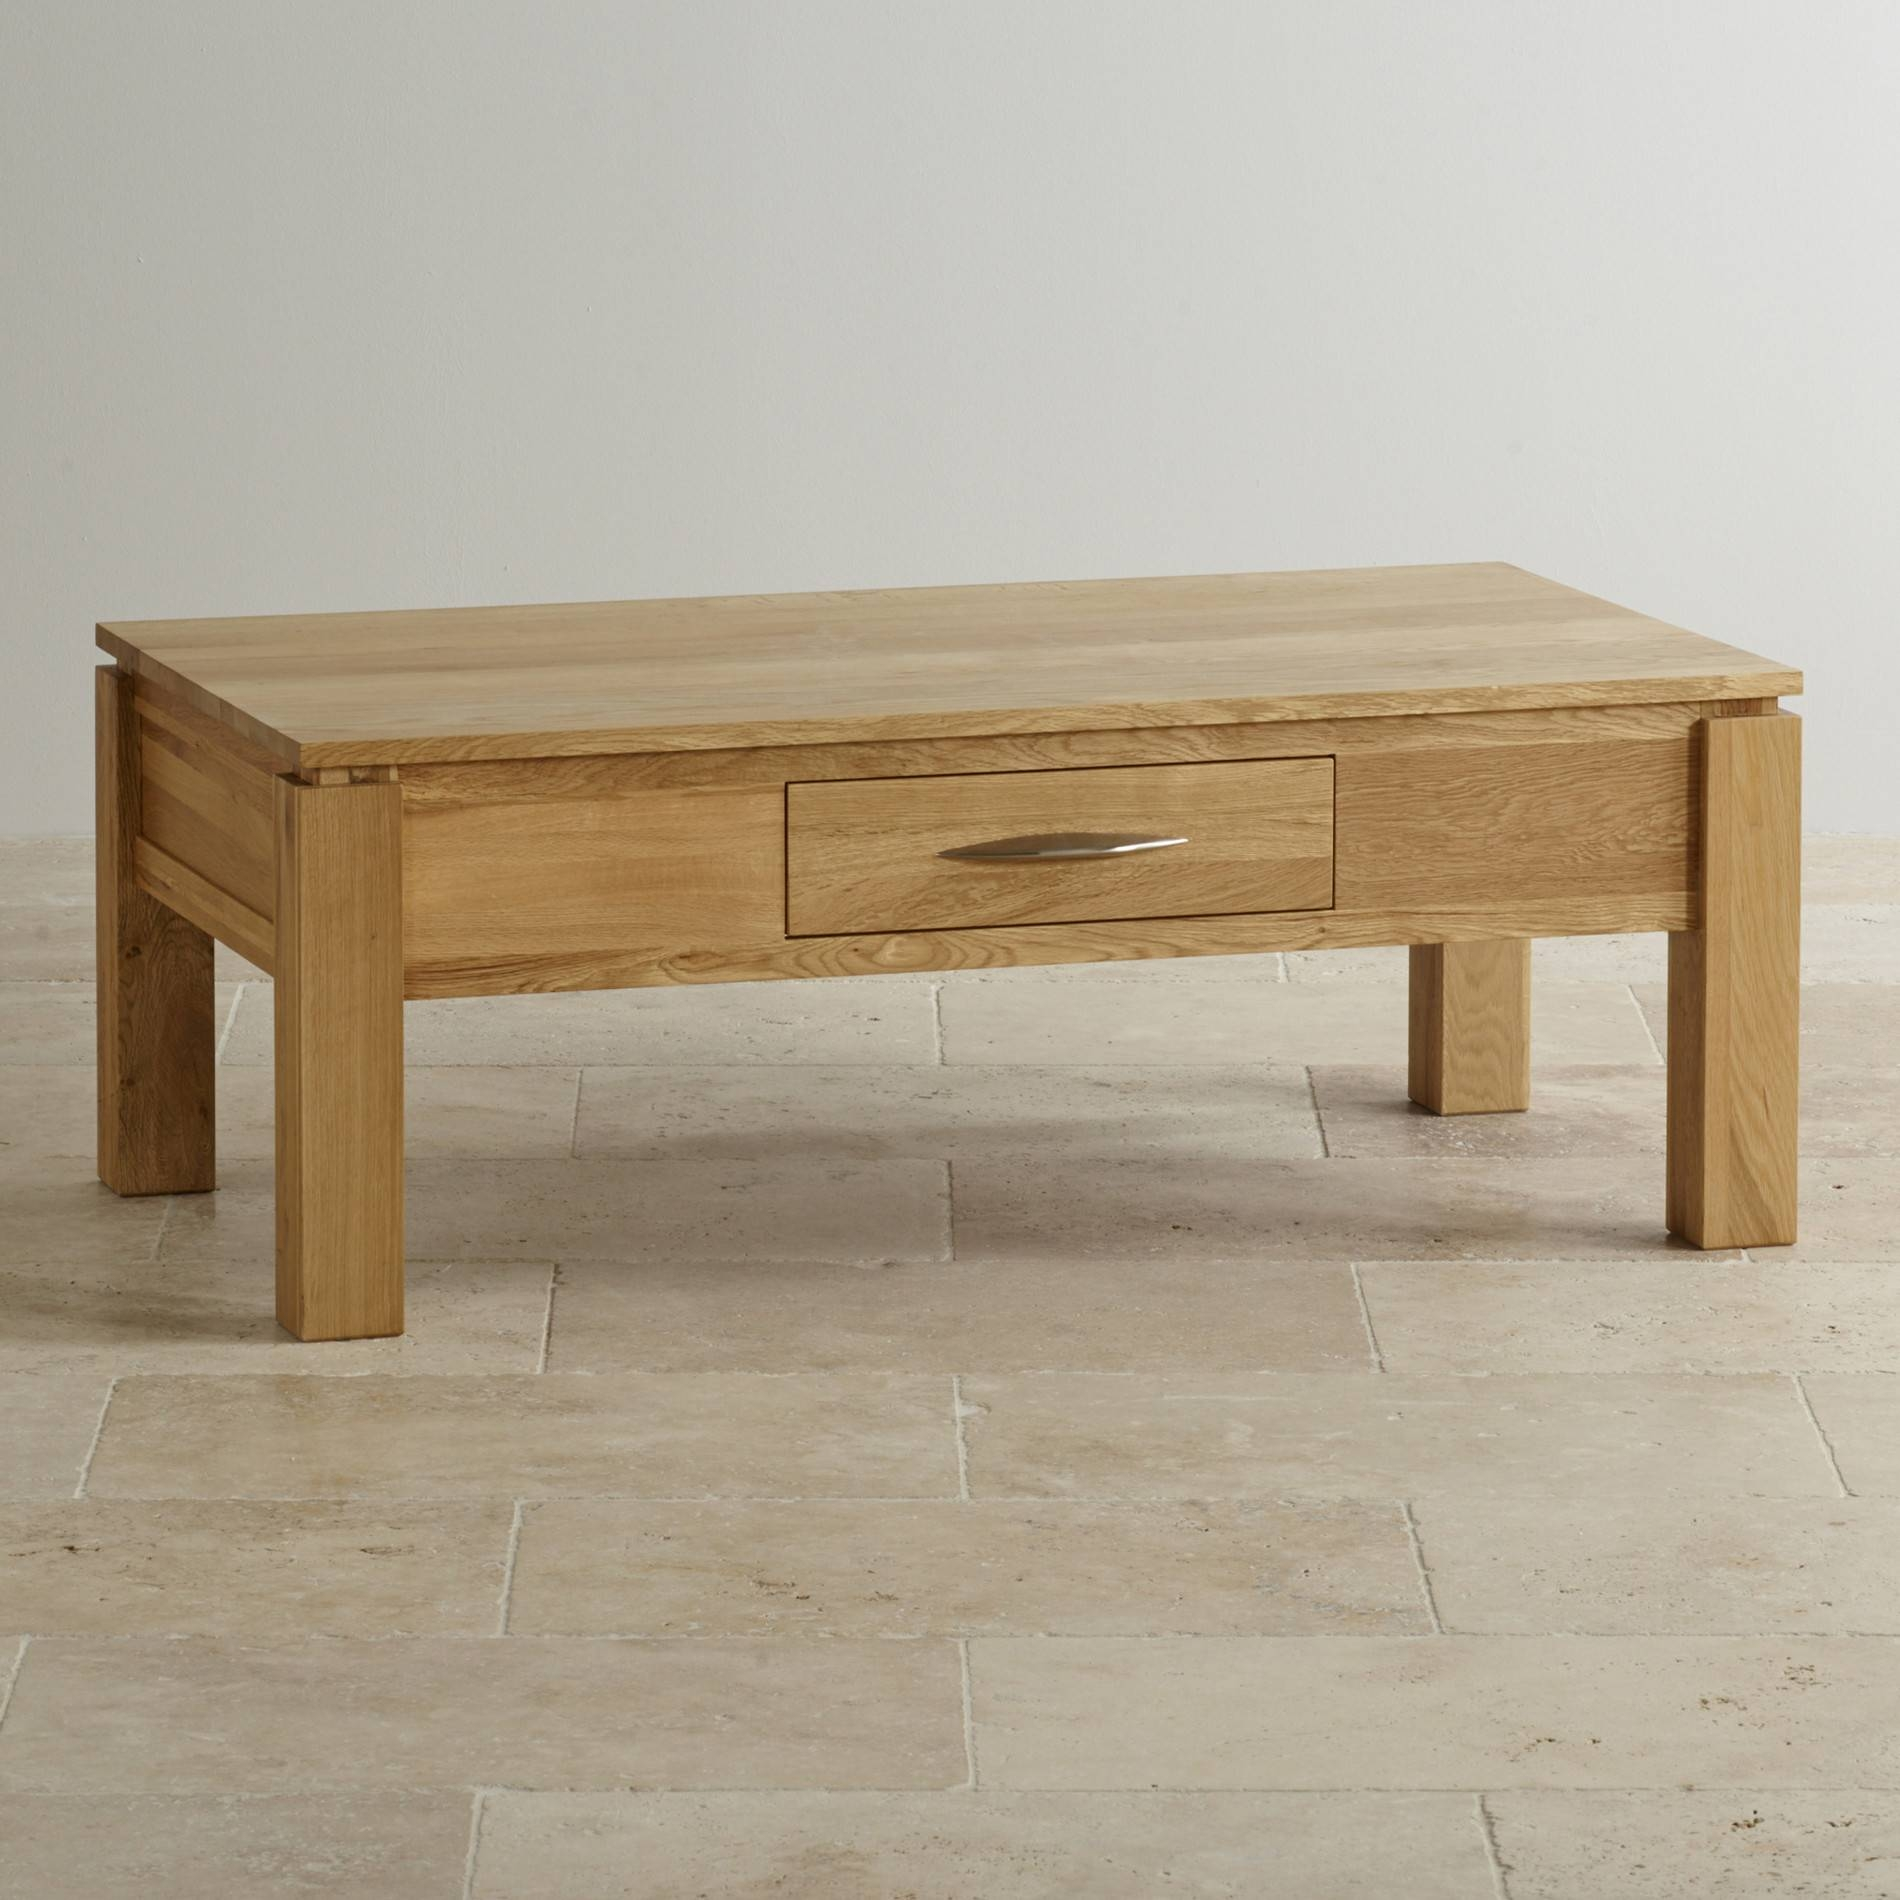 Galway Large Coffee Table In Solid Oak | Oak Furniture Land Intended For Oak Coffee Table With Storage (View 5 of 15)